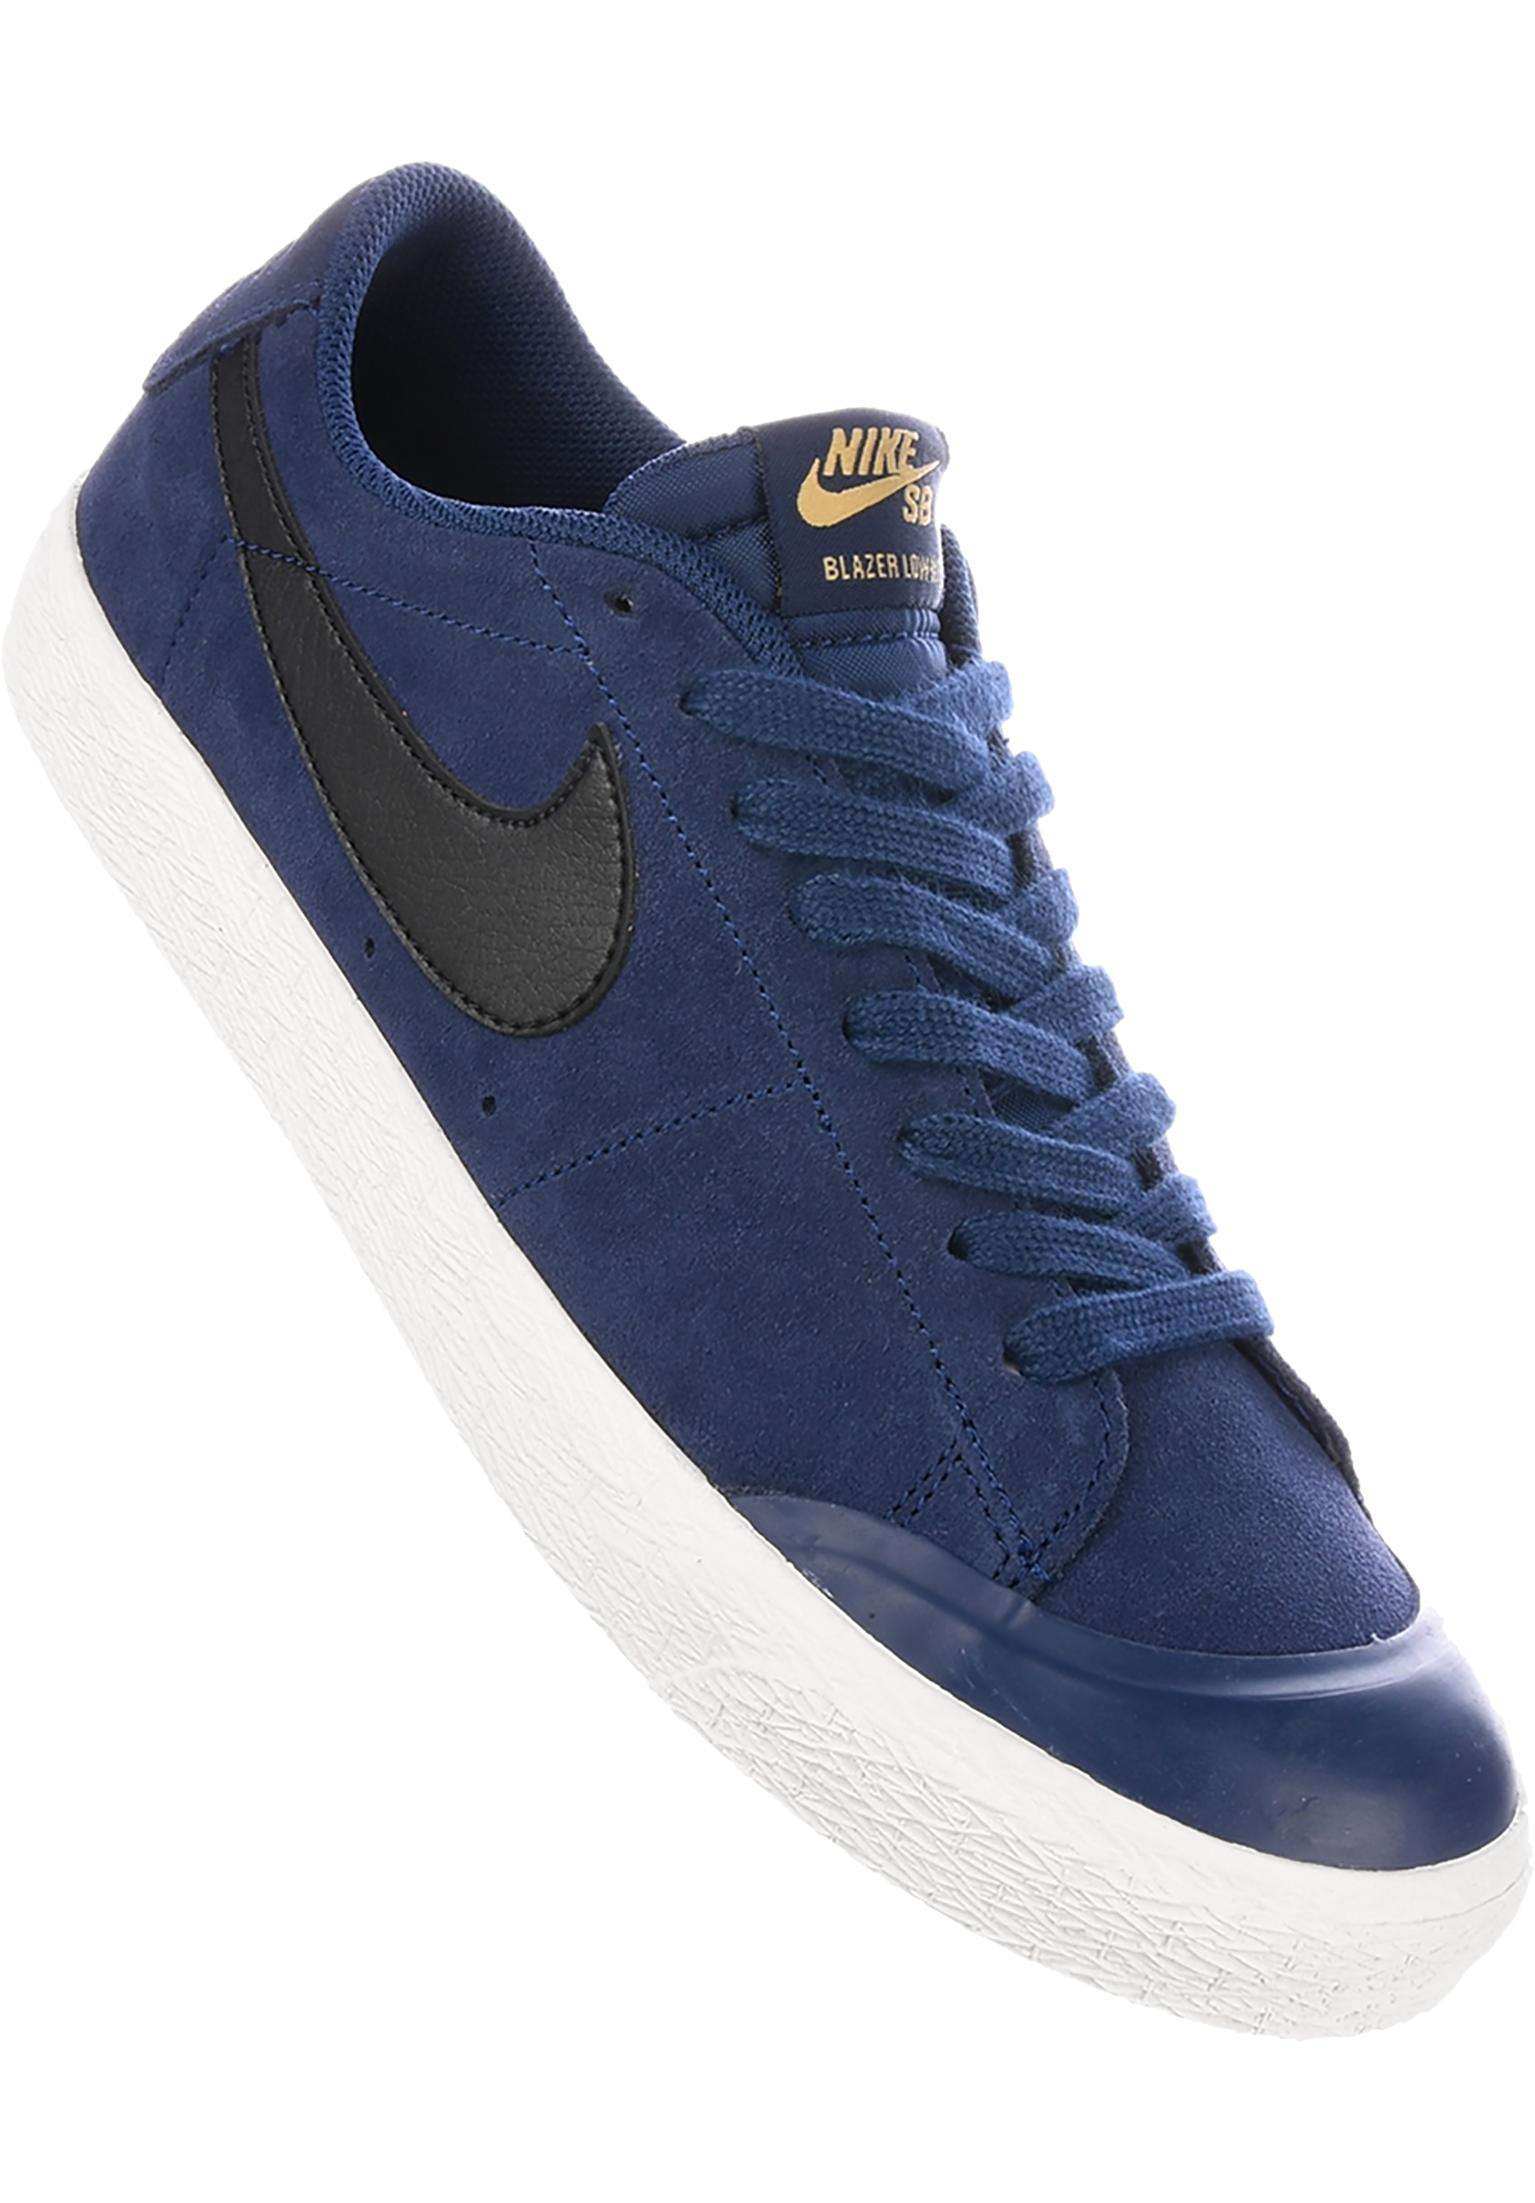 ea0330e29a3eb Zoom Blazer Low XT Nike SB All Shoes in binaryblue-black for Men